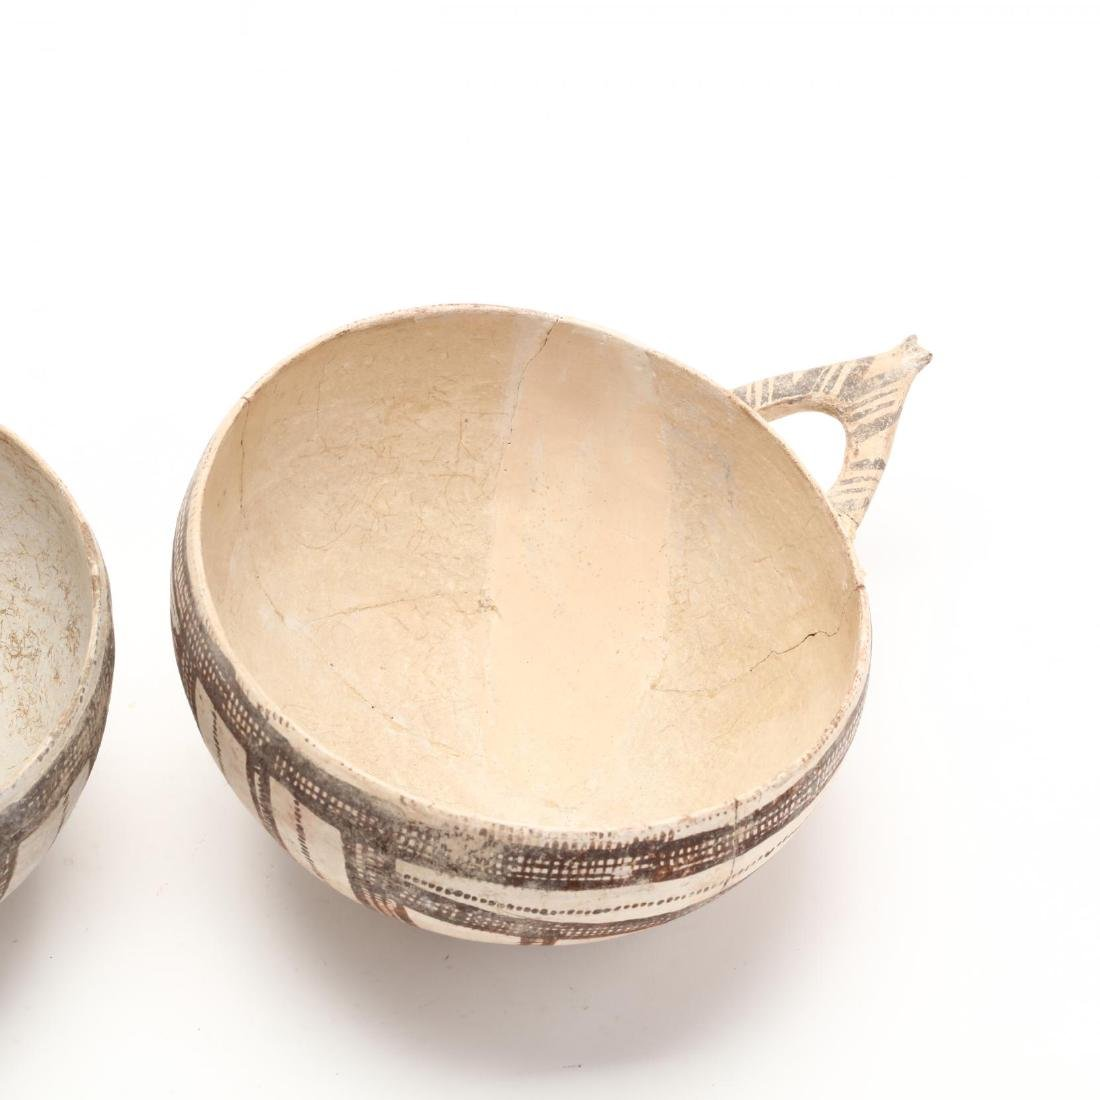 Pair of Cypriot Late Bronze Age White Slip Bowls - 6